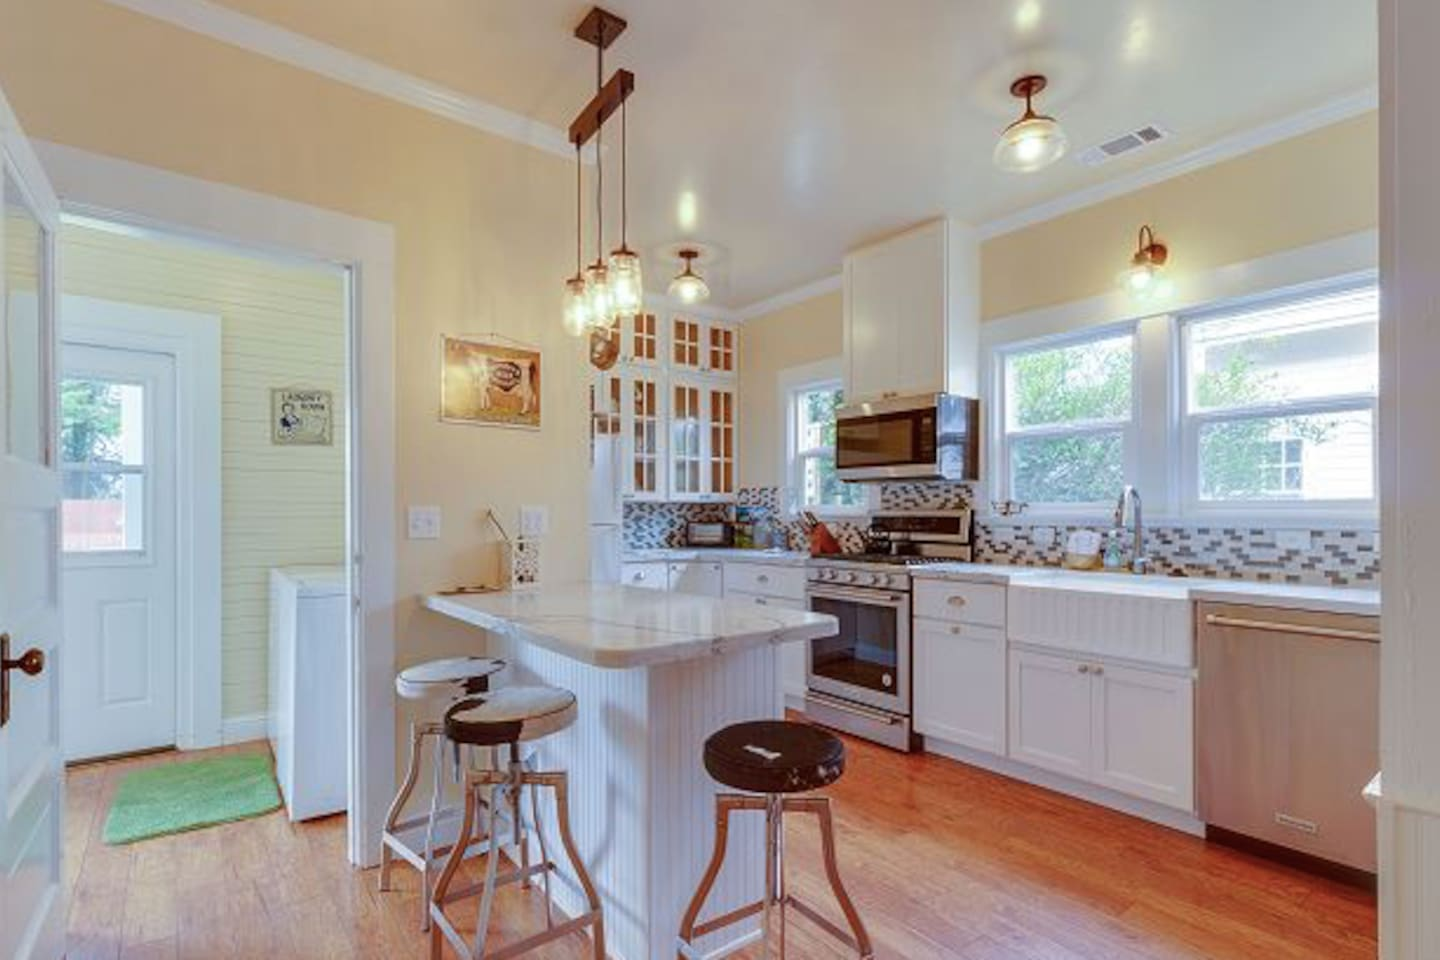 Sunny and warm remodeled kitchen with all the goods to cook meals with the ones you love!